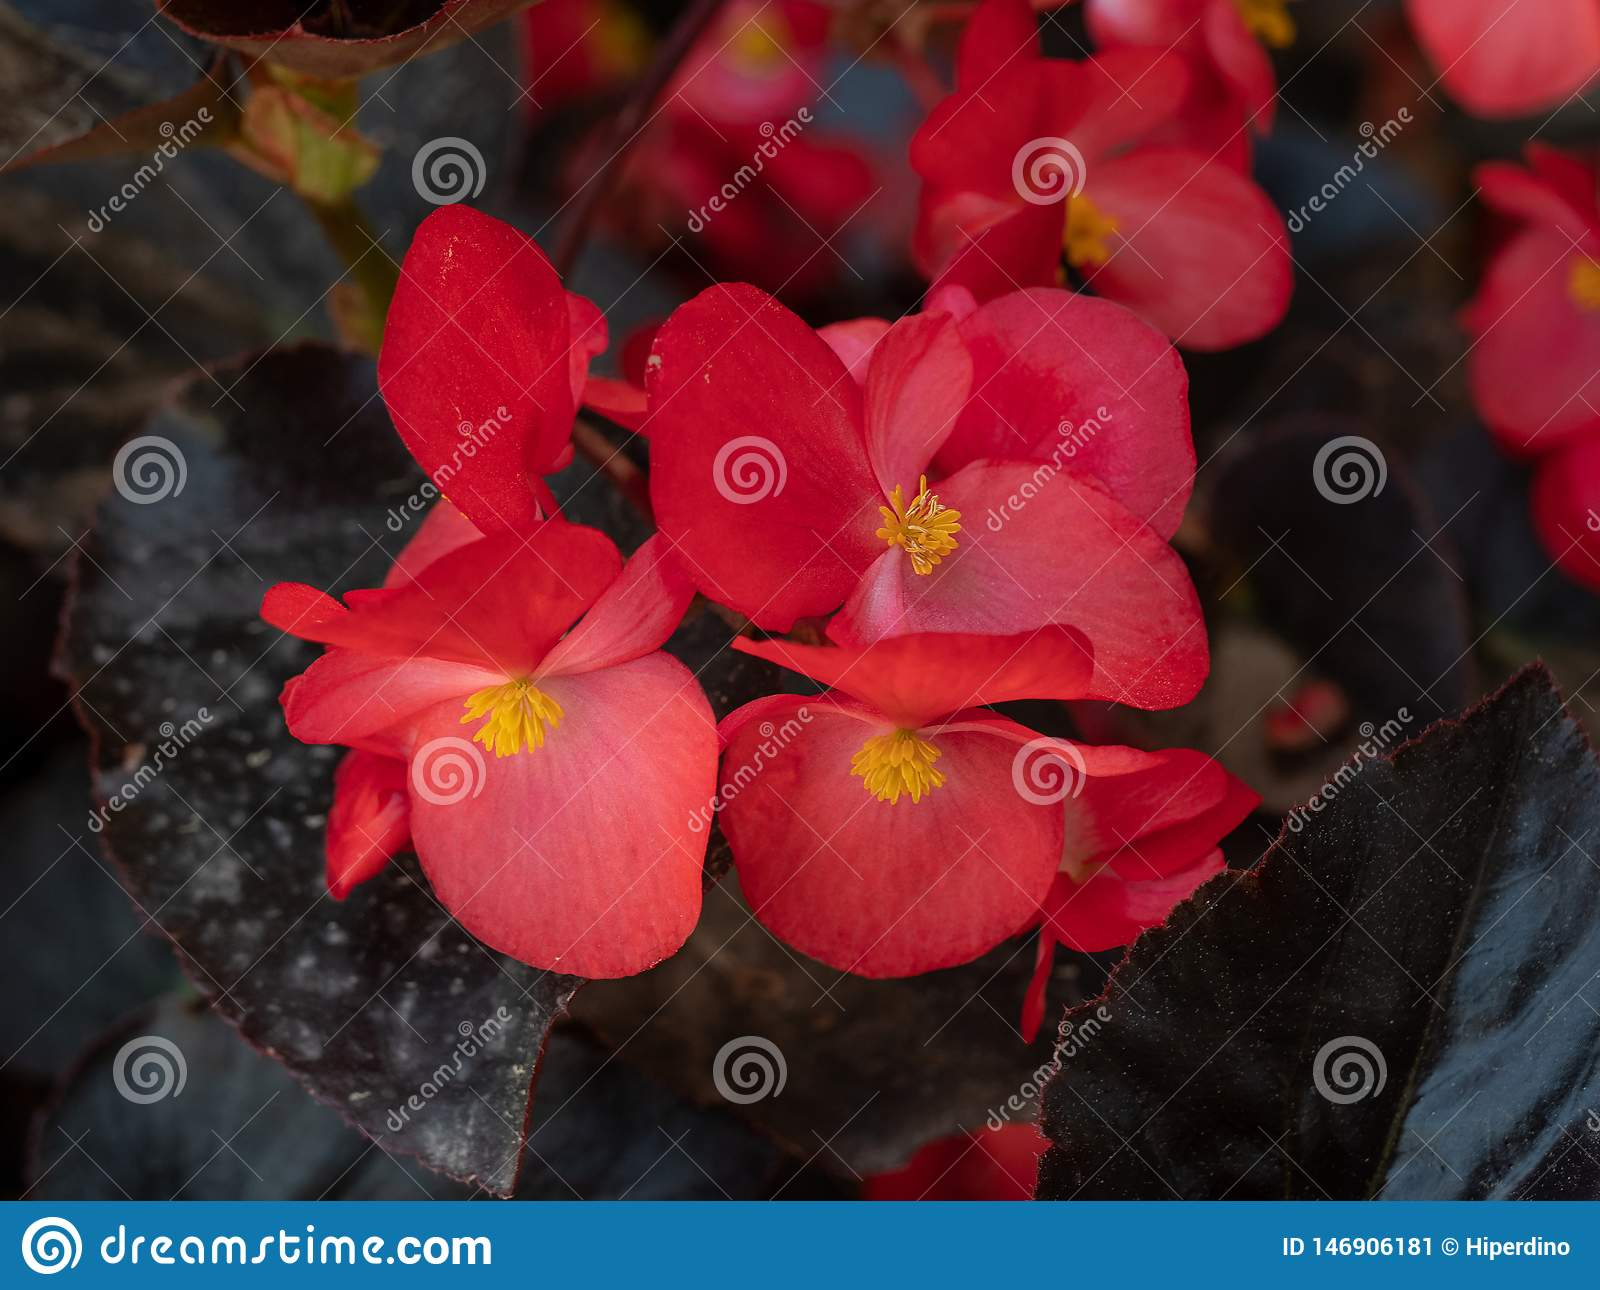 Red young garden wax begonia flowers with leaves